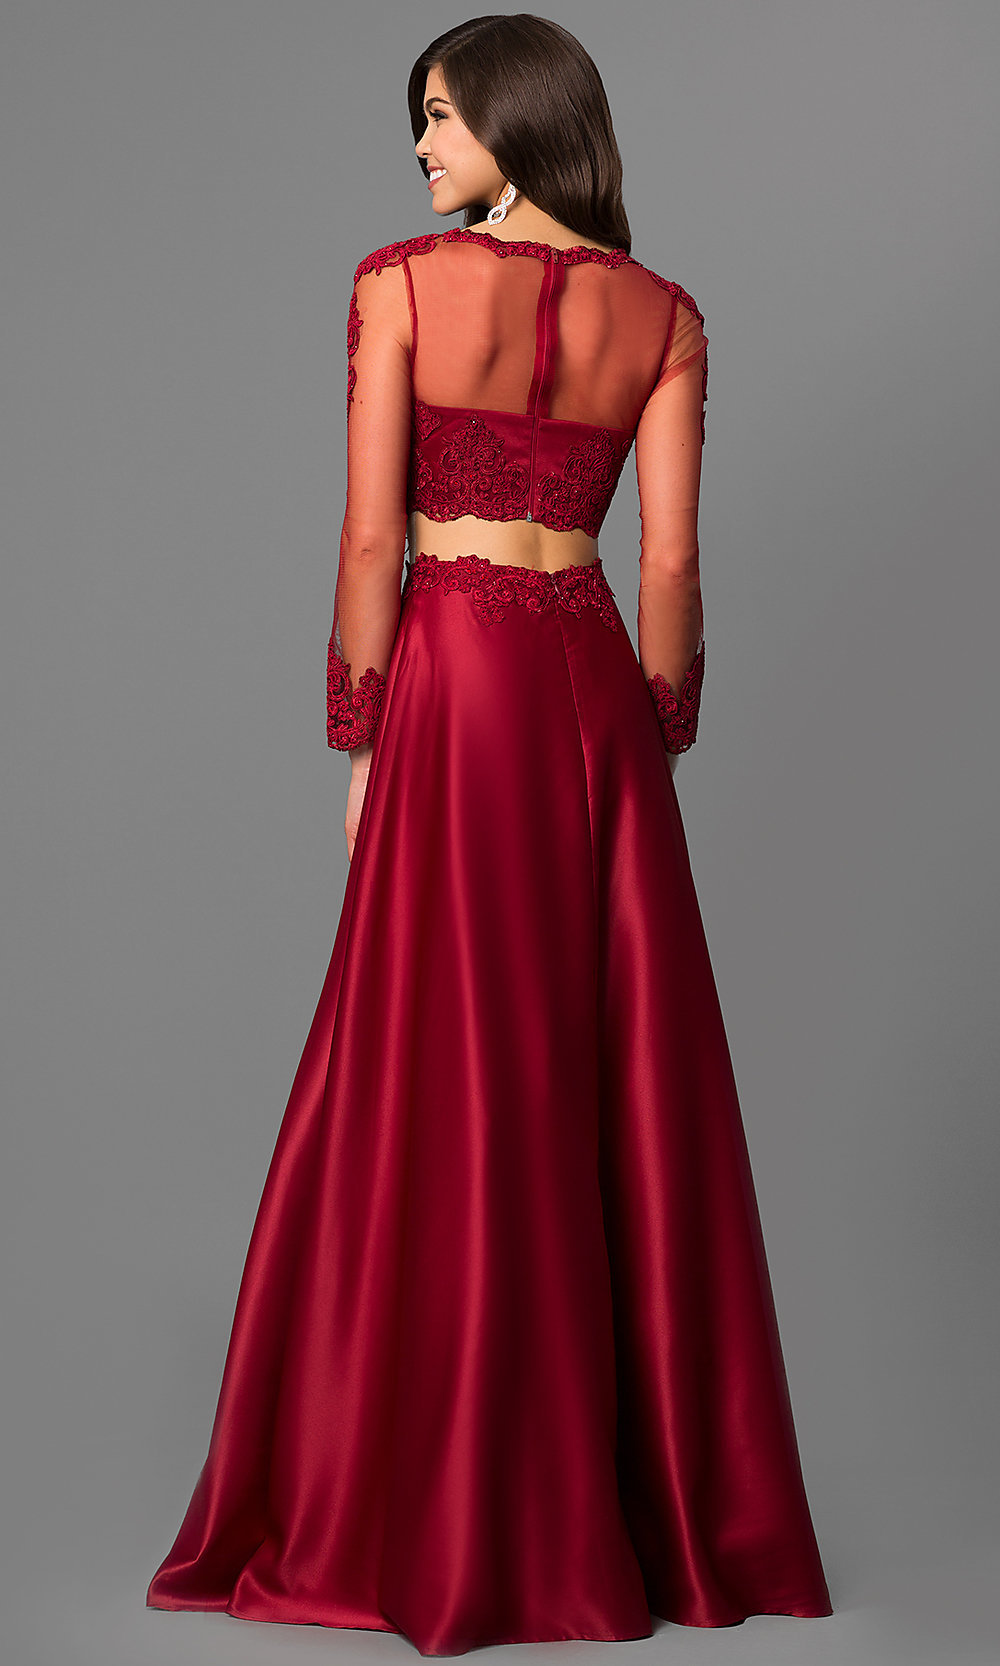 dress piece prom lace sleeves sleeve bodice dresses burgundy promgirl dq simplydresses